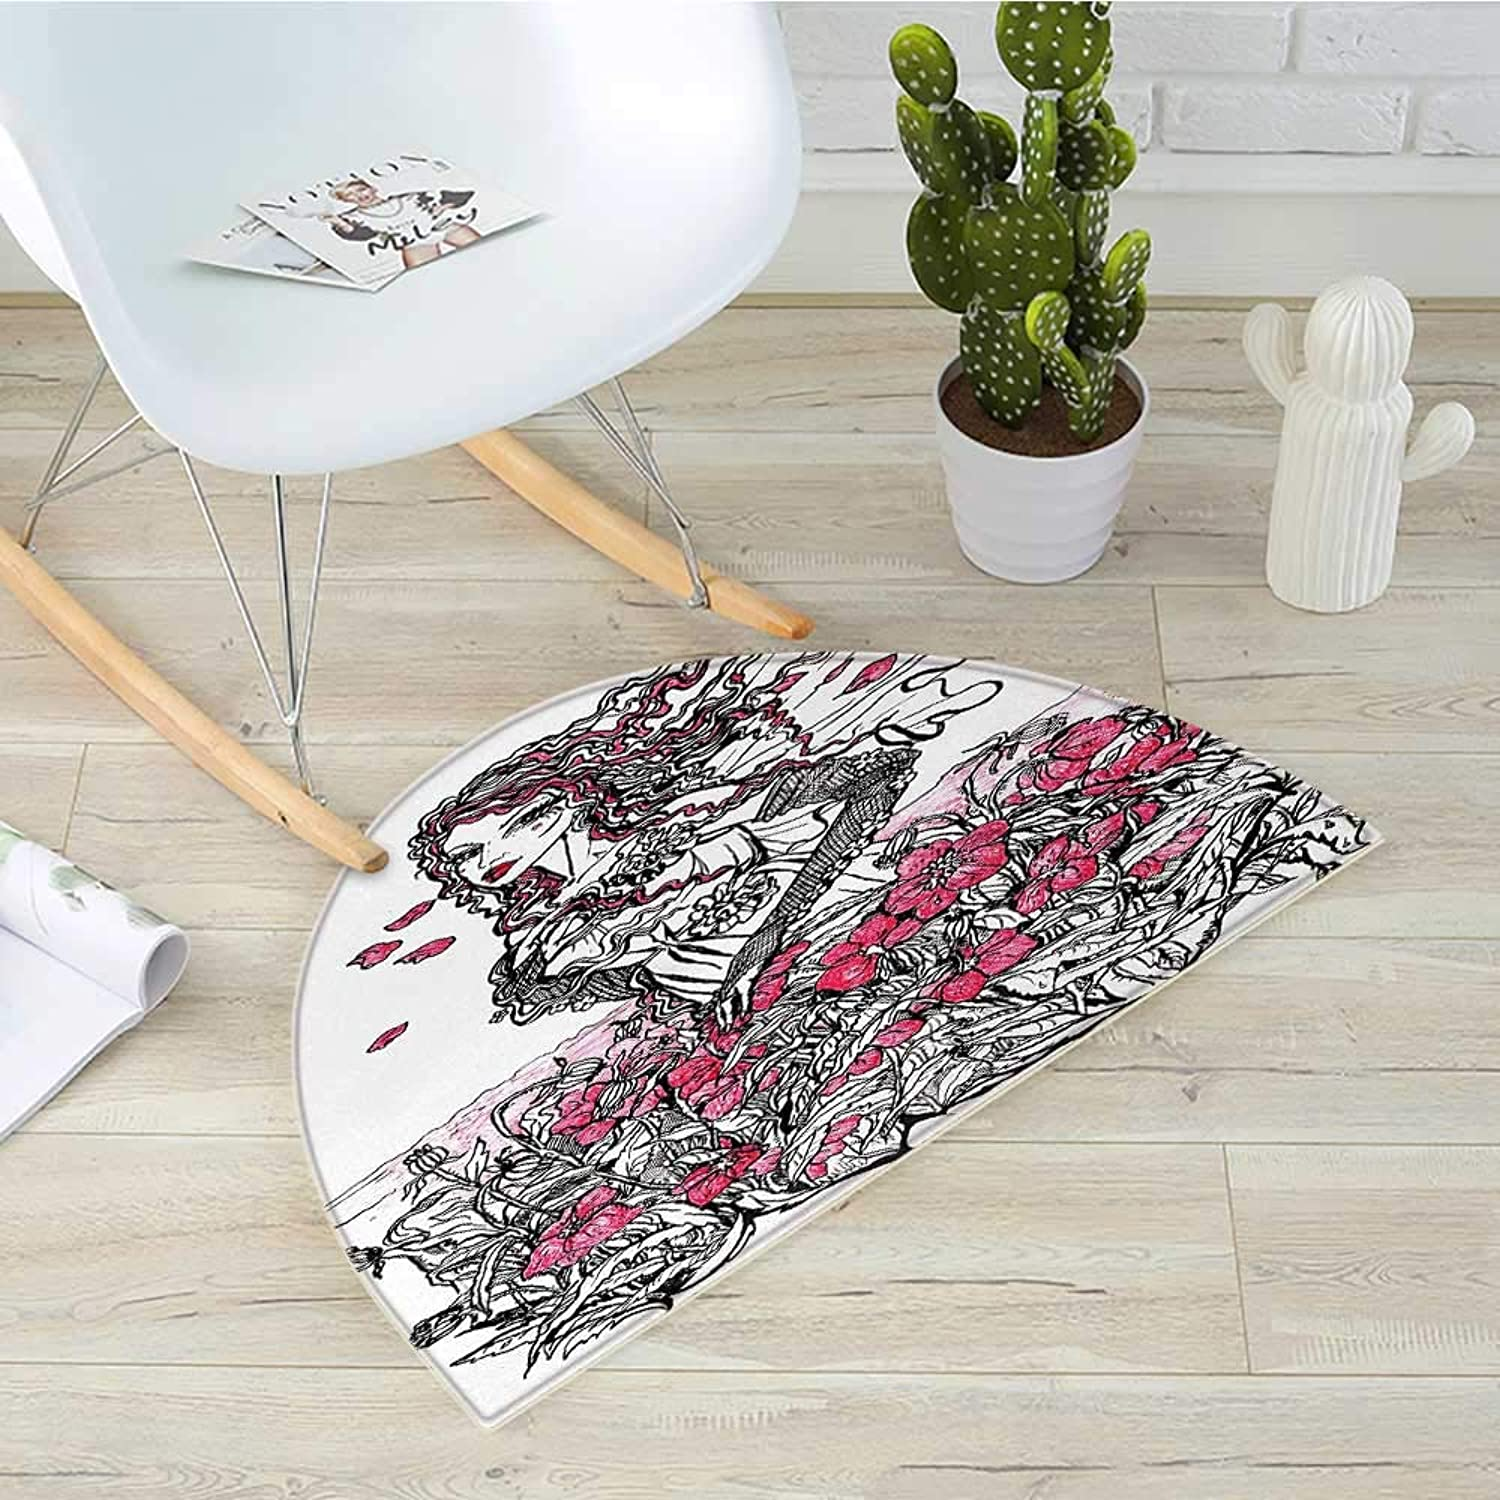 Sketchy Half Round Door mats Ink Illustration of a Woman on Poppy Field Surrounded by Flowers Spring Theme Bathroom Mat H 27.5  xD 41.3  Black White Pink